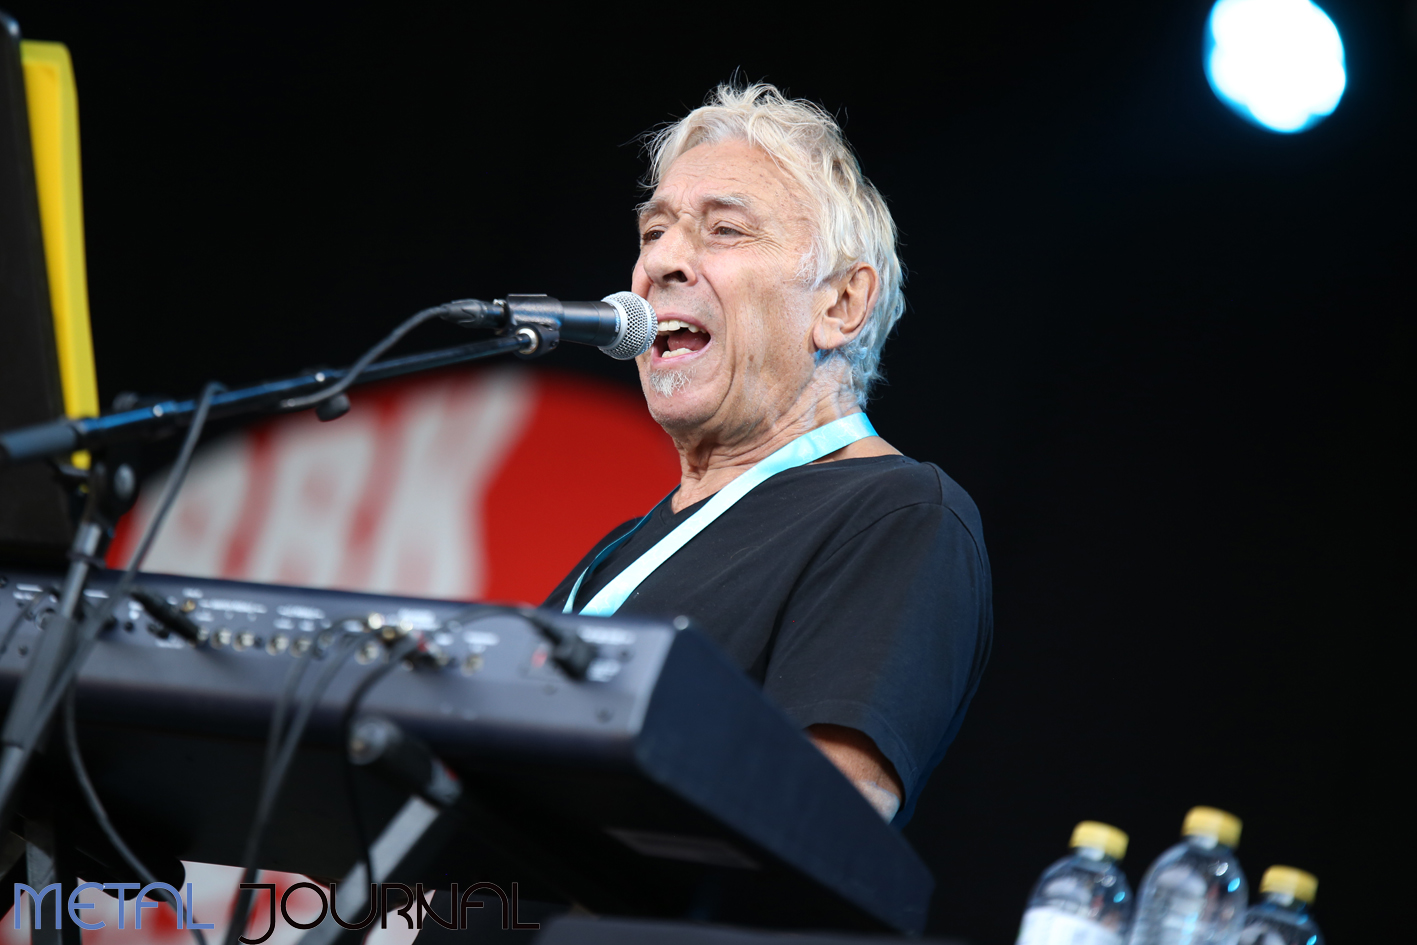 john cale - bbk legends 2018 pic 2